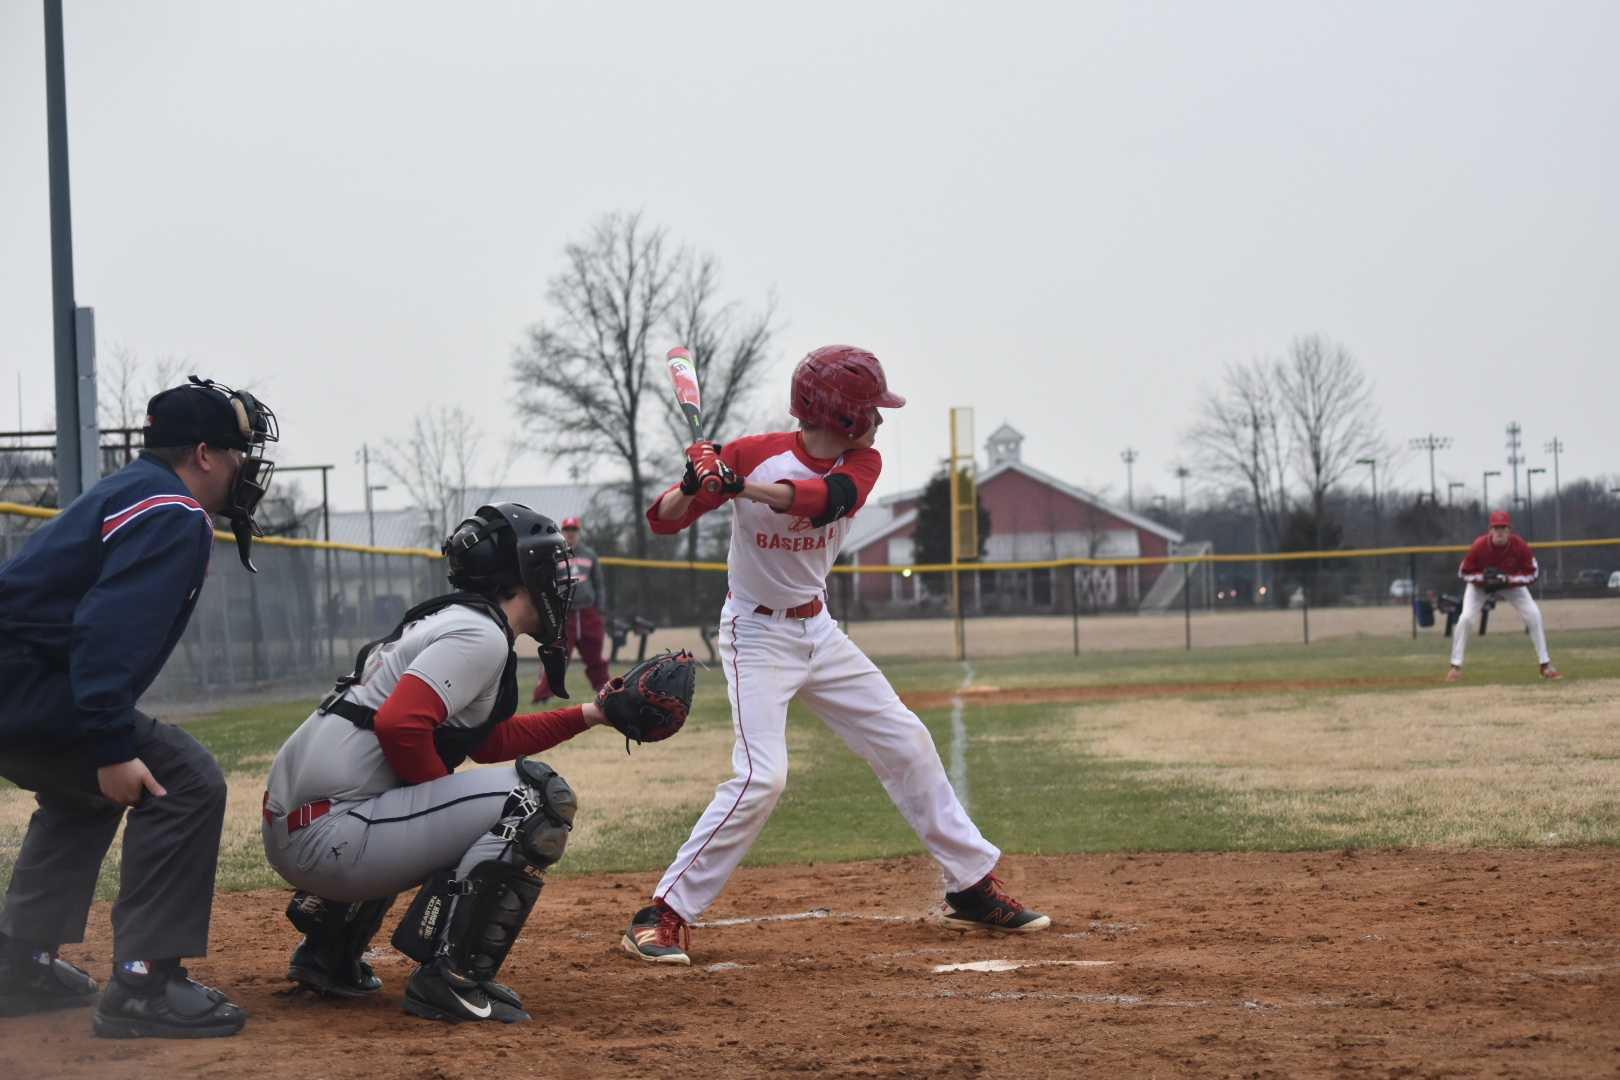 Sophomore Ethan Zimmerman swings at a pitch in a scrimmage against the Park View Patriots on March 6.